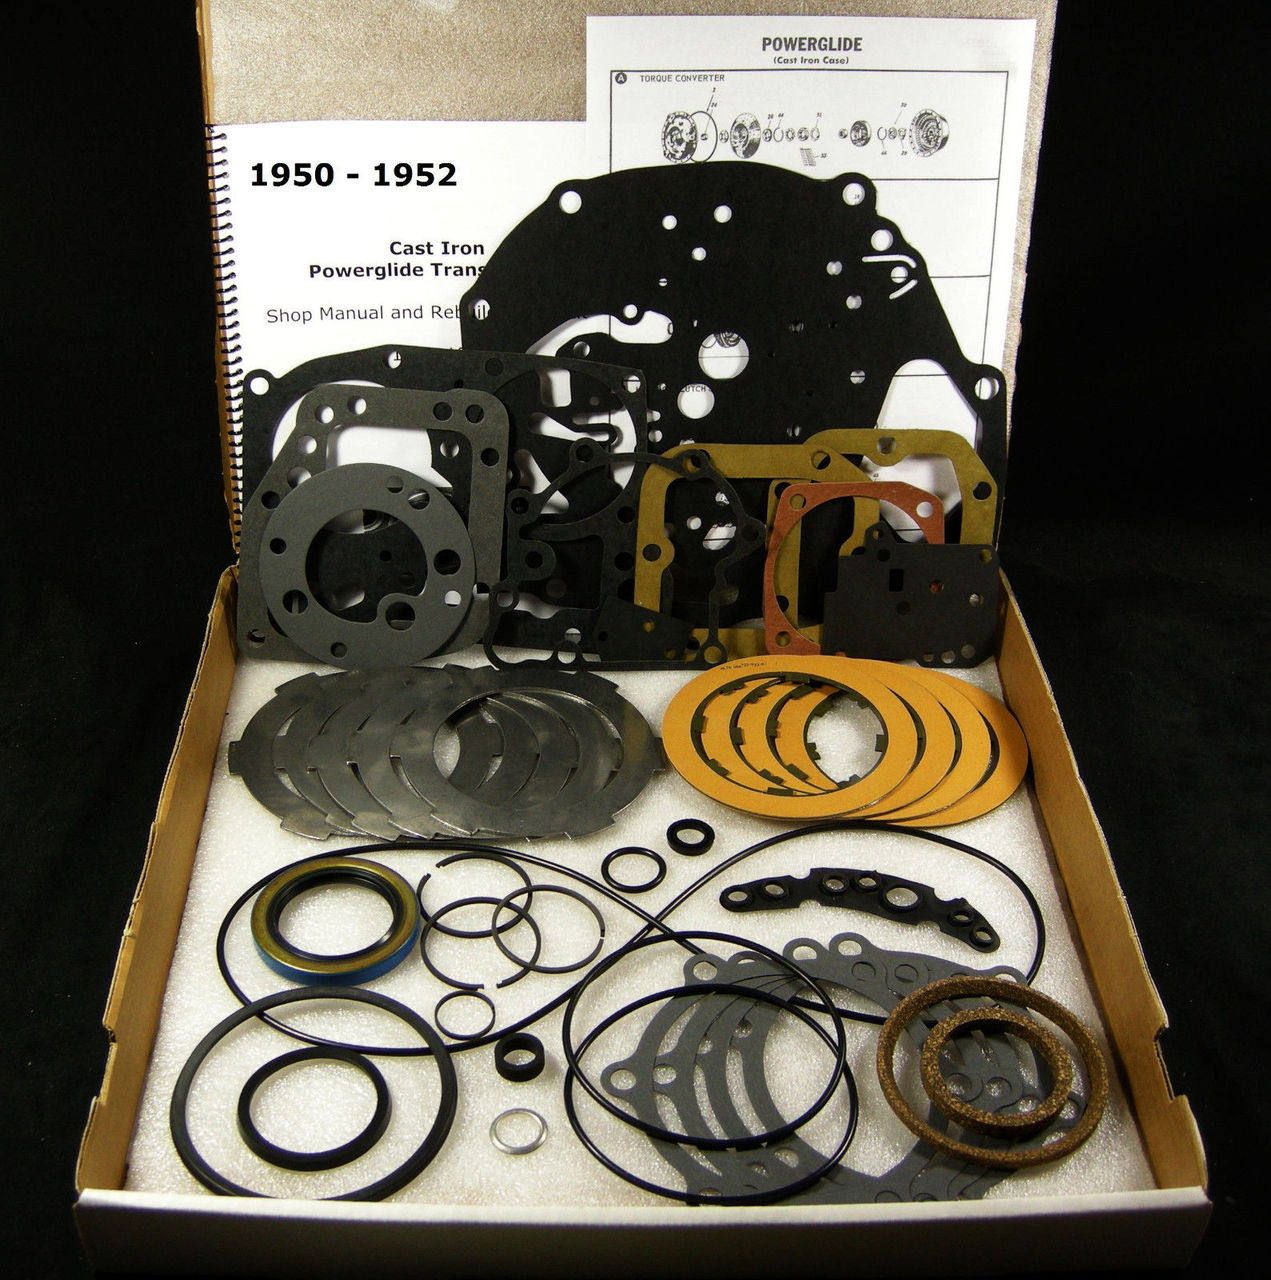 small resolution of 950 52 cast iron powerglide transmission rebuild overhaul part kit